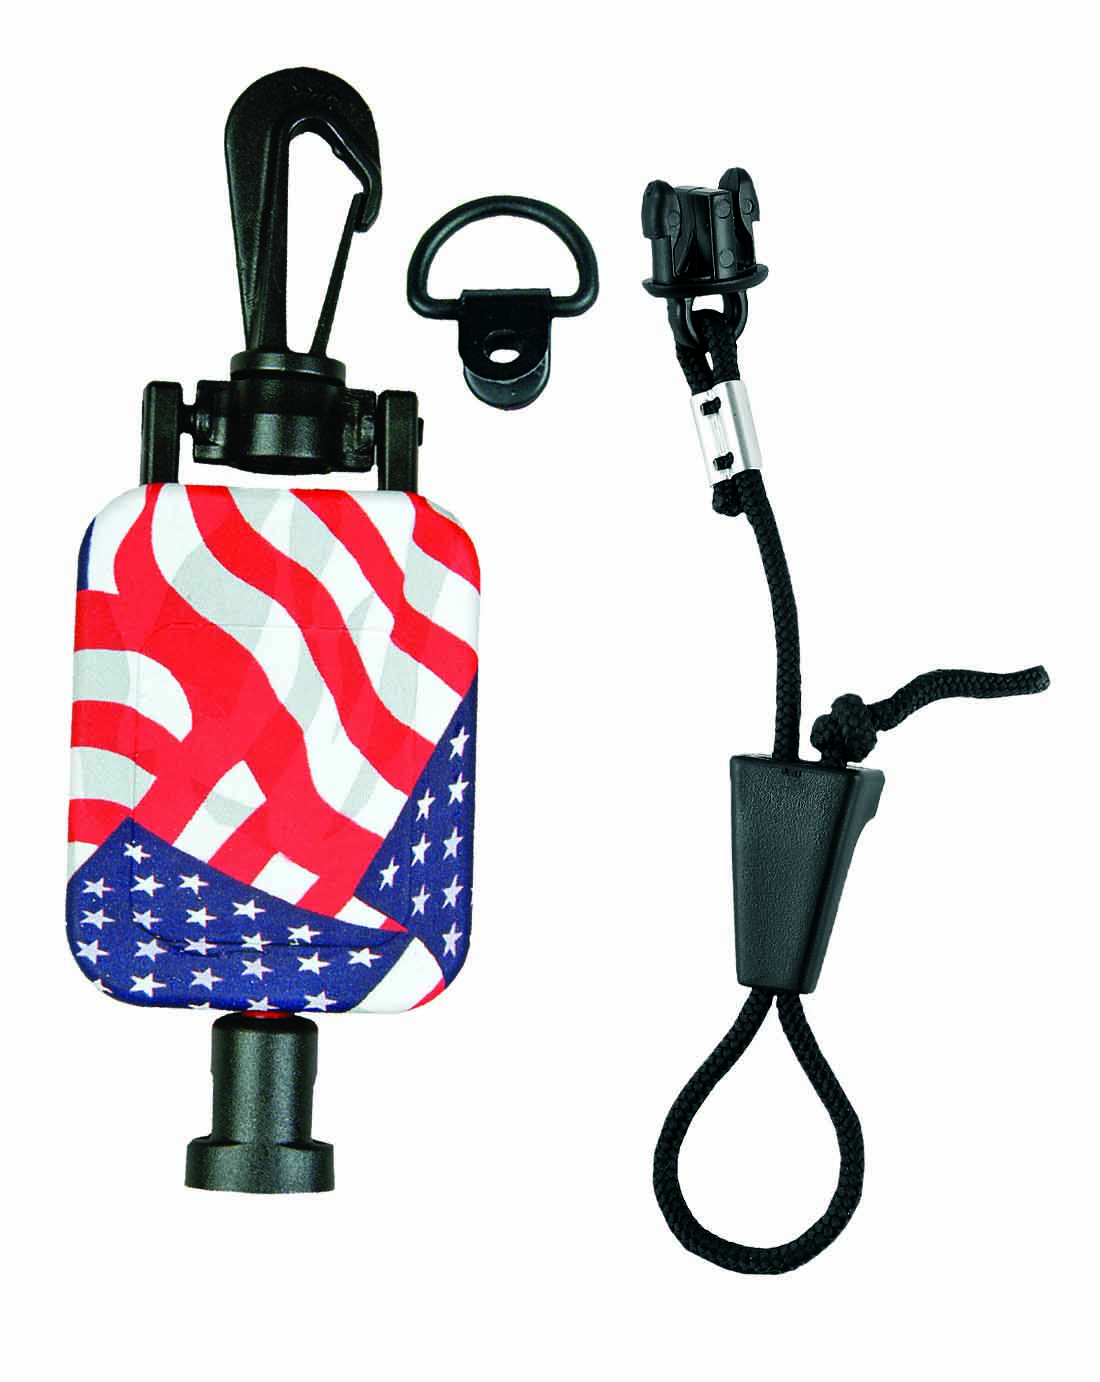 MH9USA - Retractable Mic Keeper Stars & Stripes